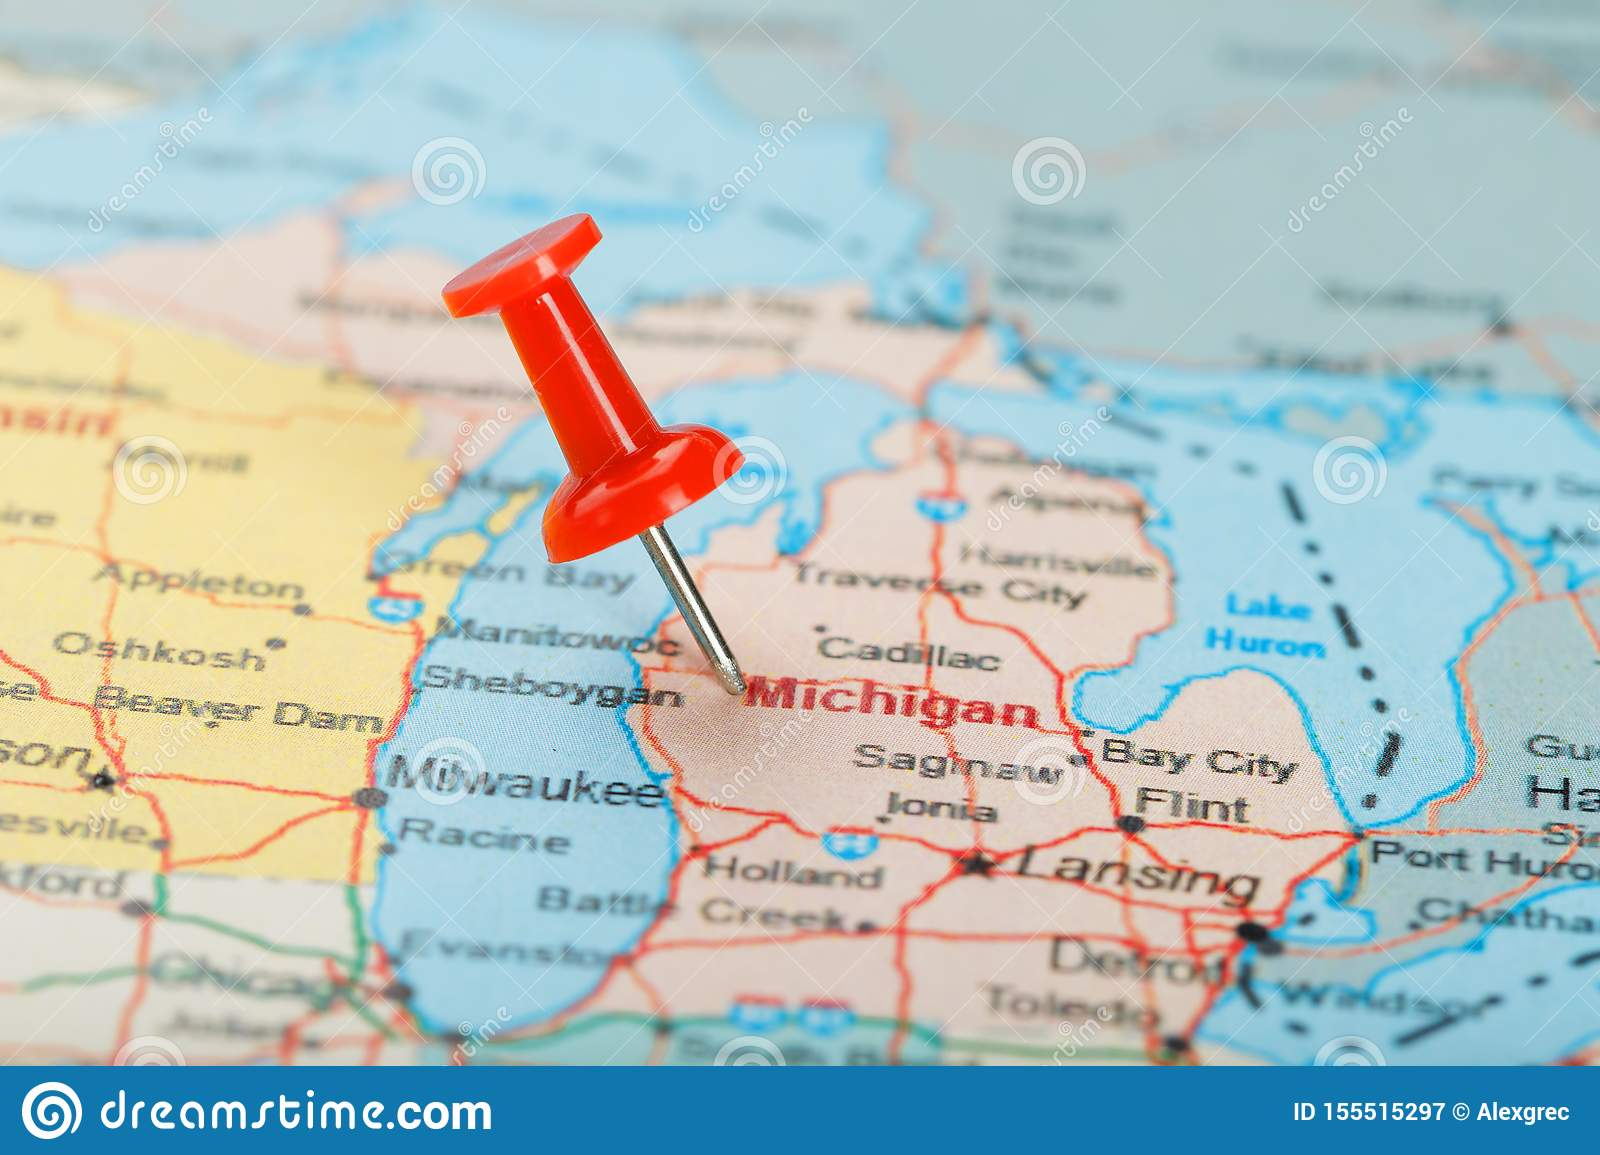 Red Clerical Needle On A Map Of USA, Michigan And The ...